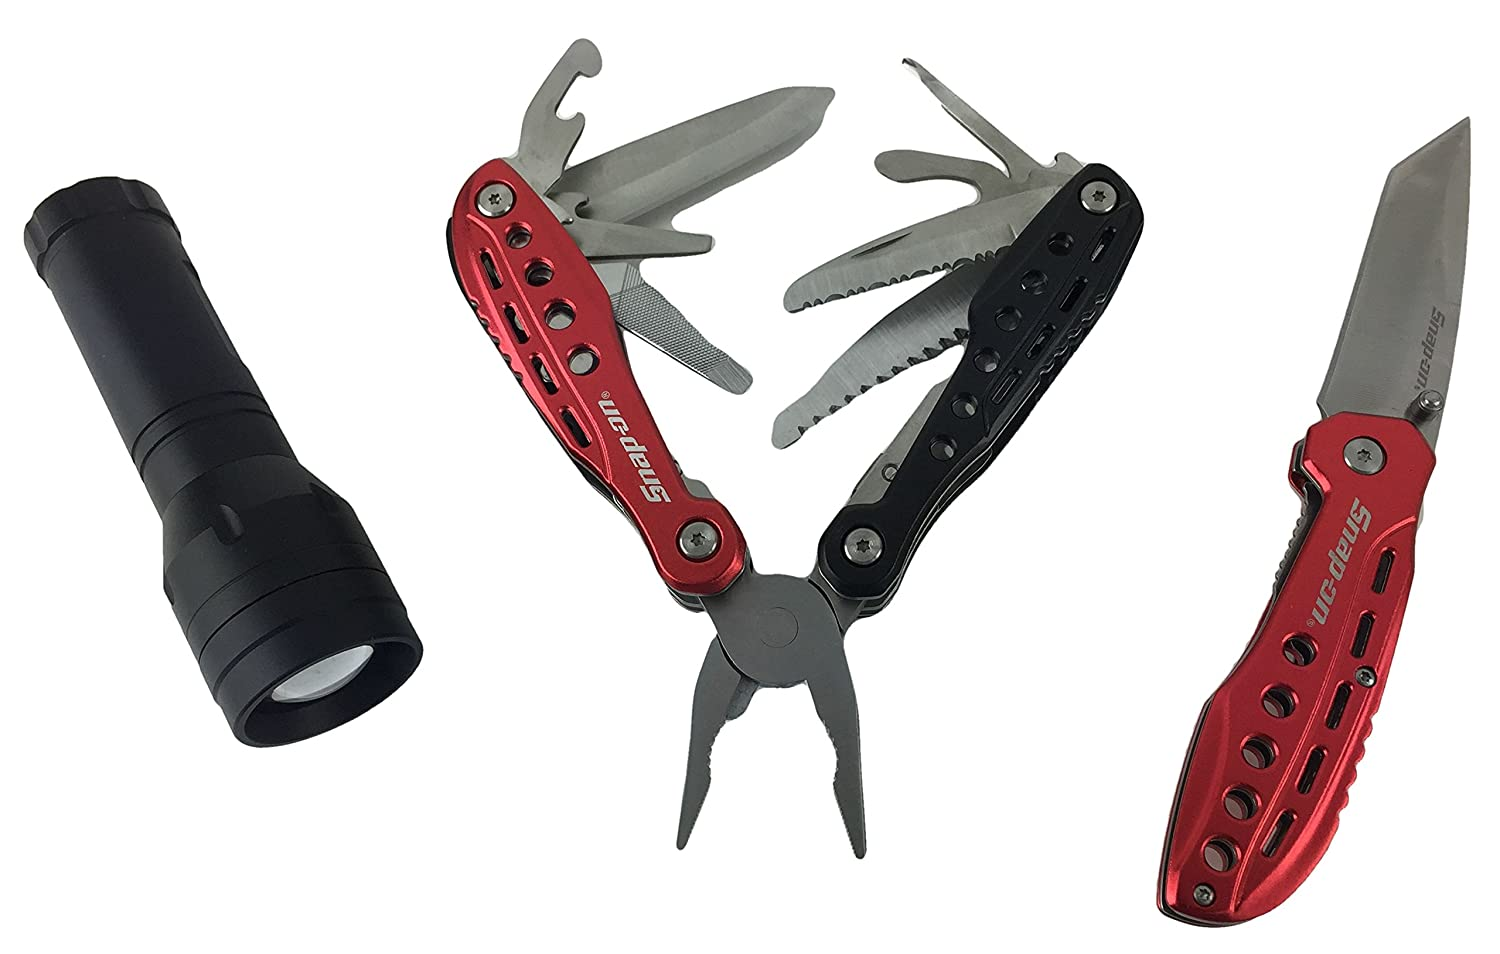 Snap on 3pc multi tool knife flashlight set